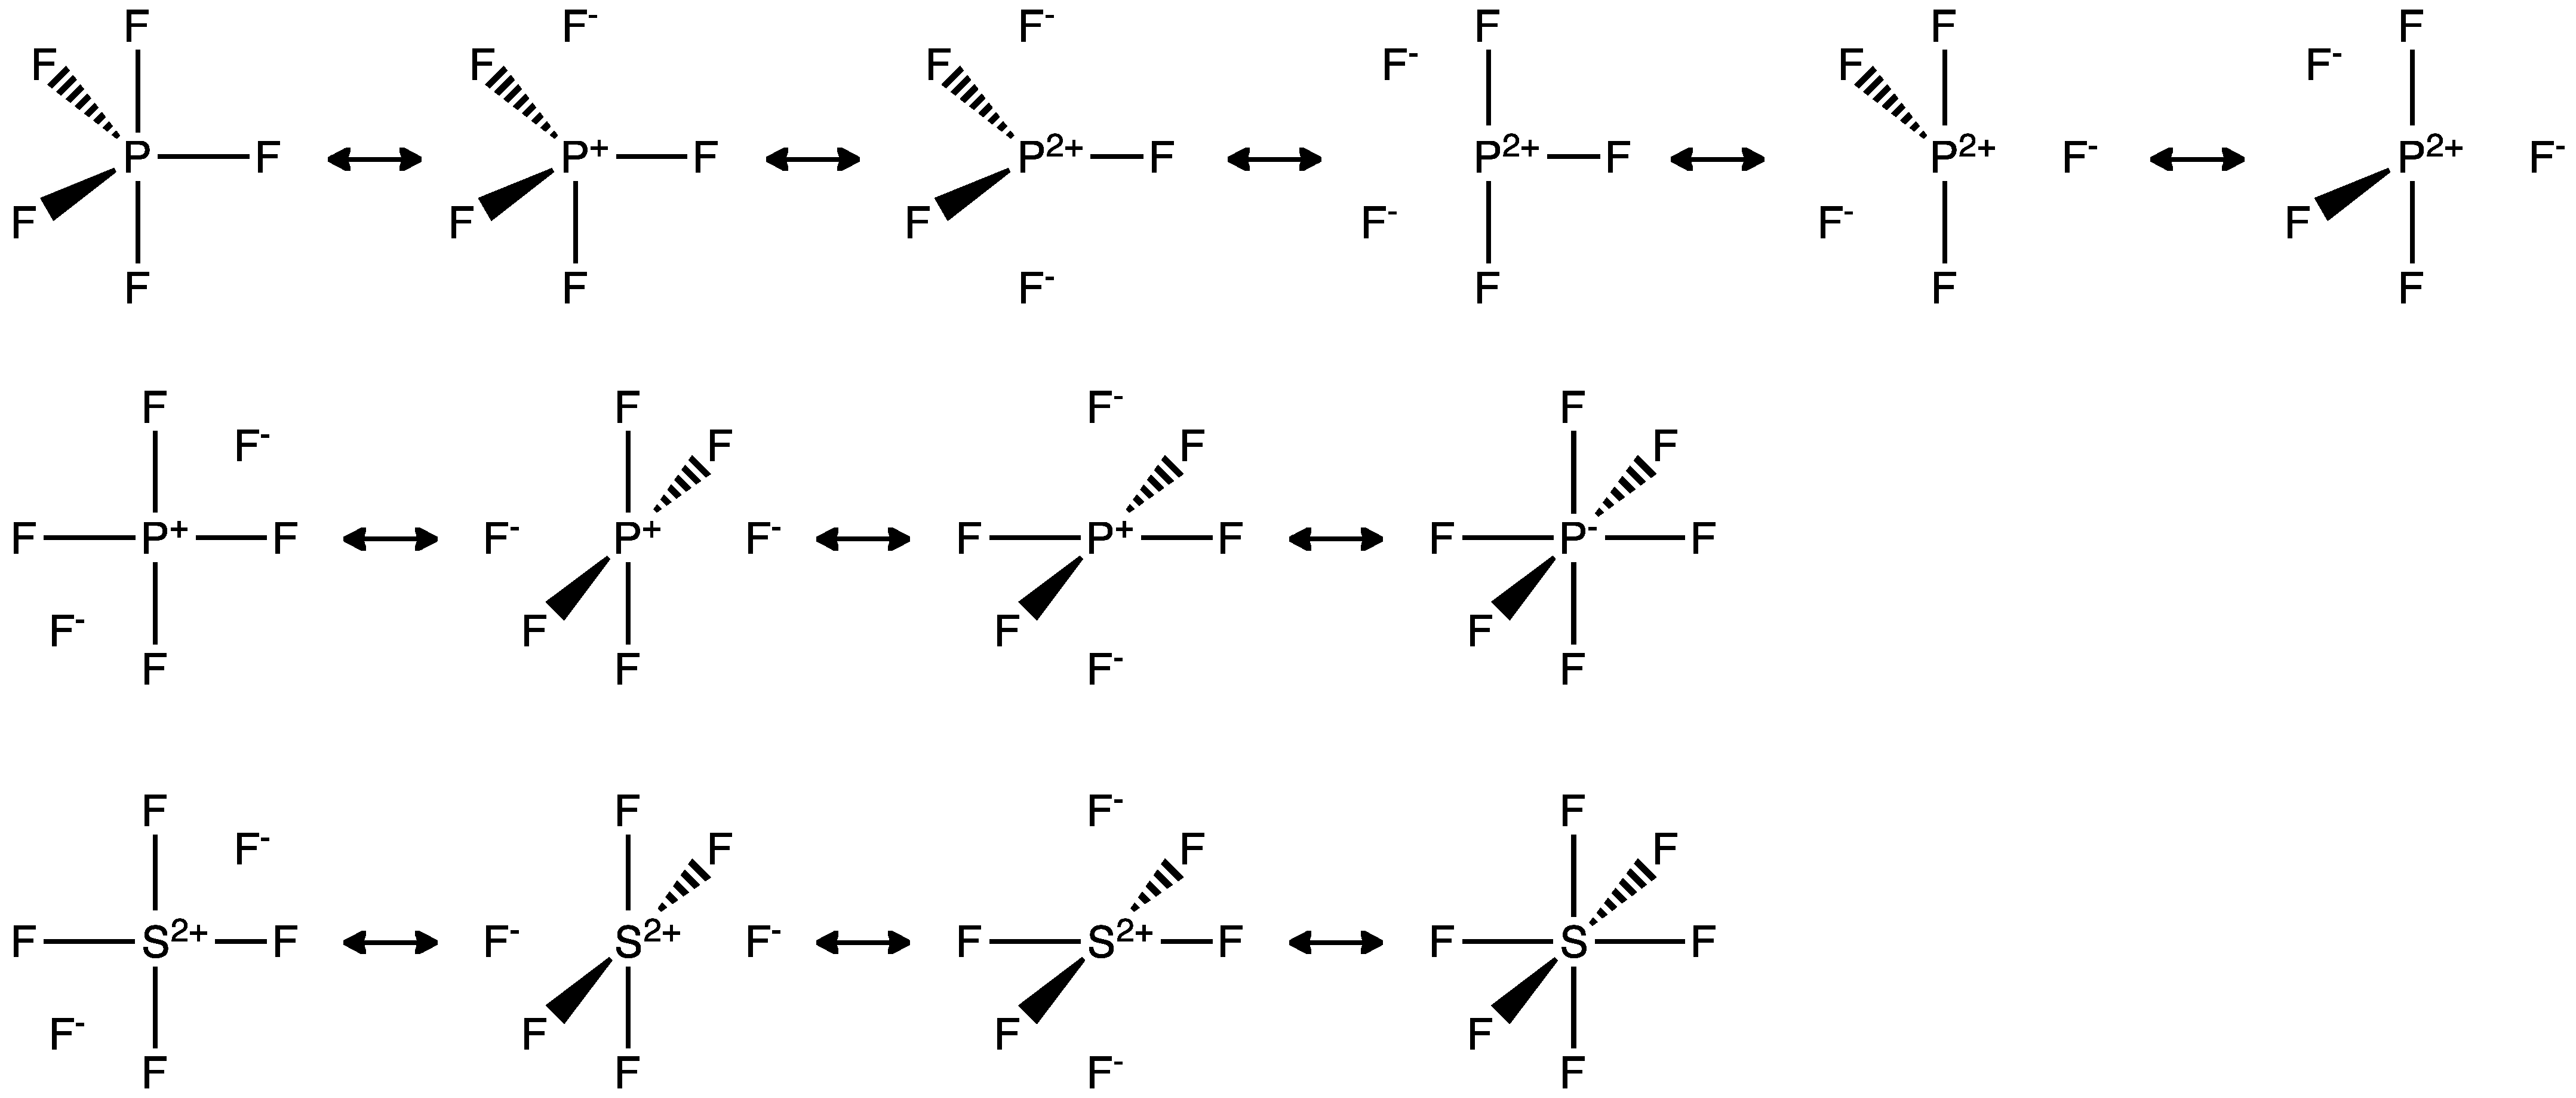 lewis dot diagram for c2h4 parts of a sentence pf6 structure related keywords